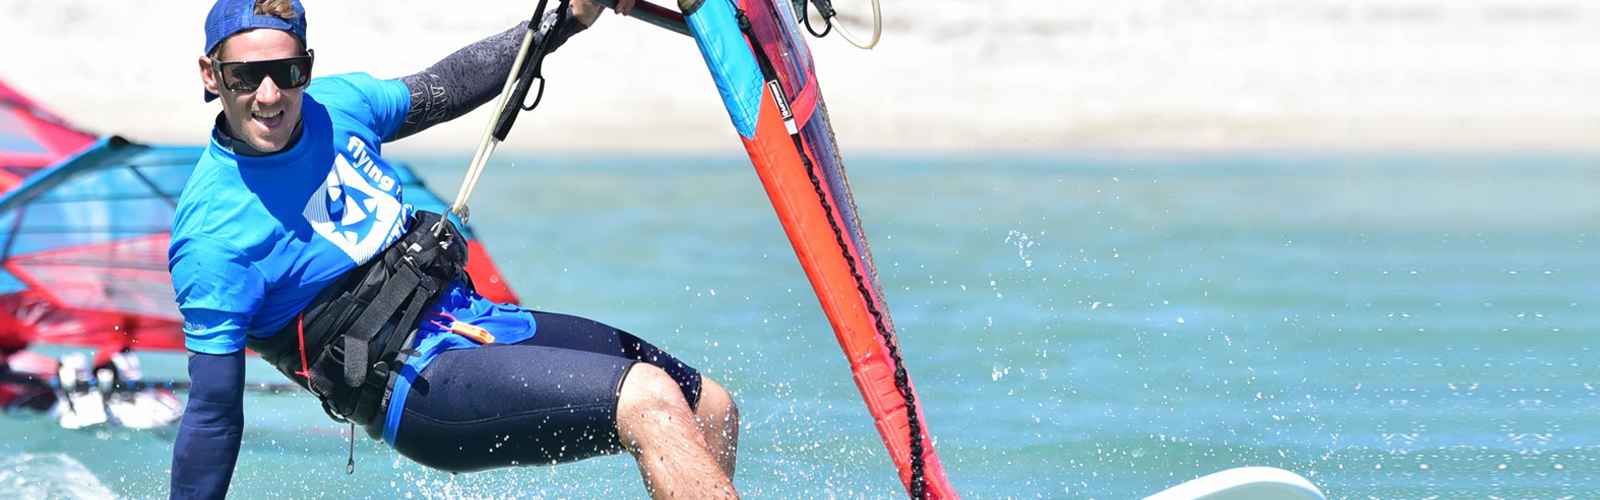 windsurfing-instructor-fast-track